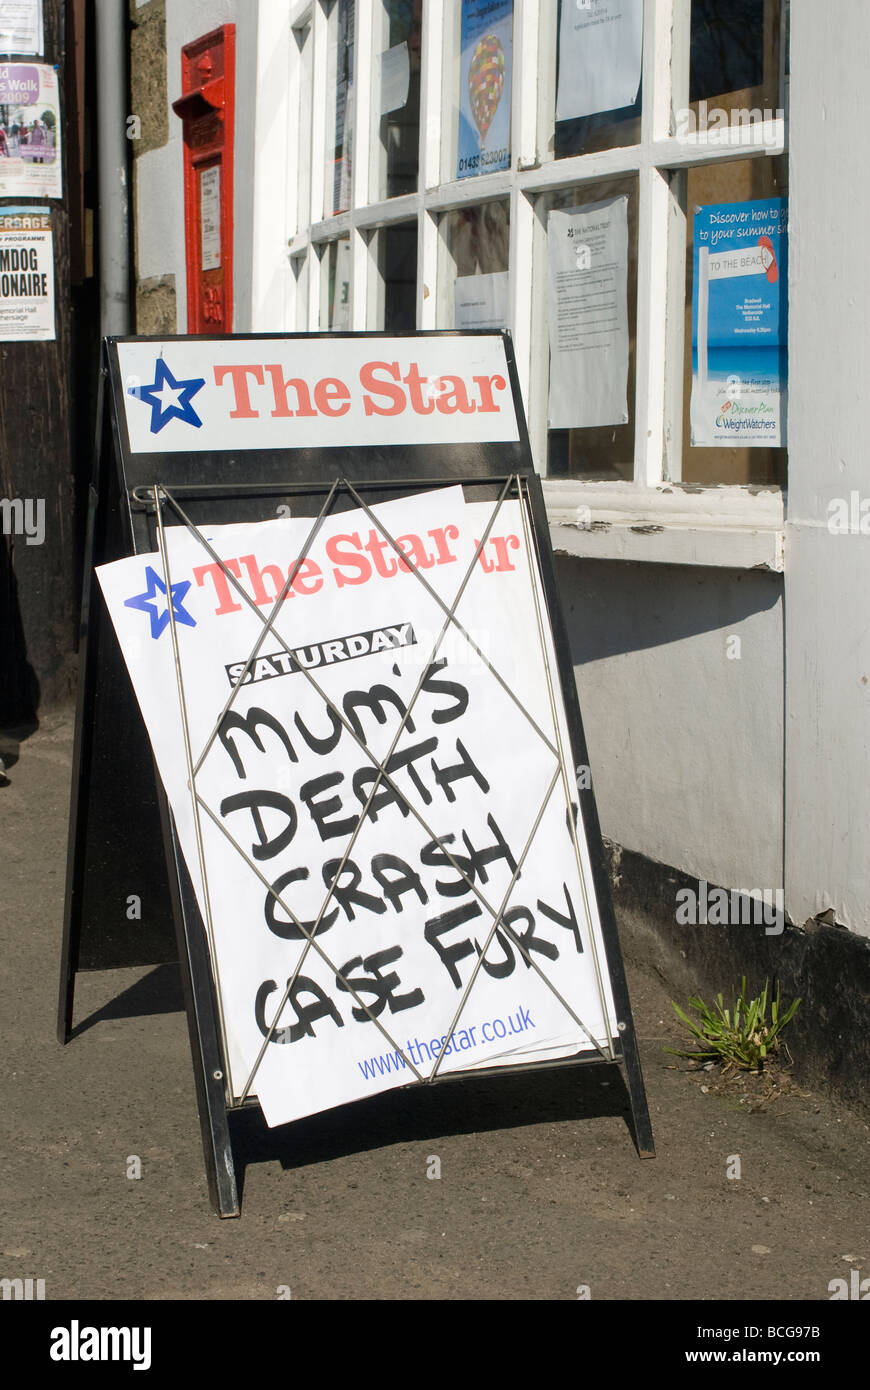 Newspaper headline board outside a newsagents shop in England - Stock Image